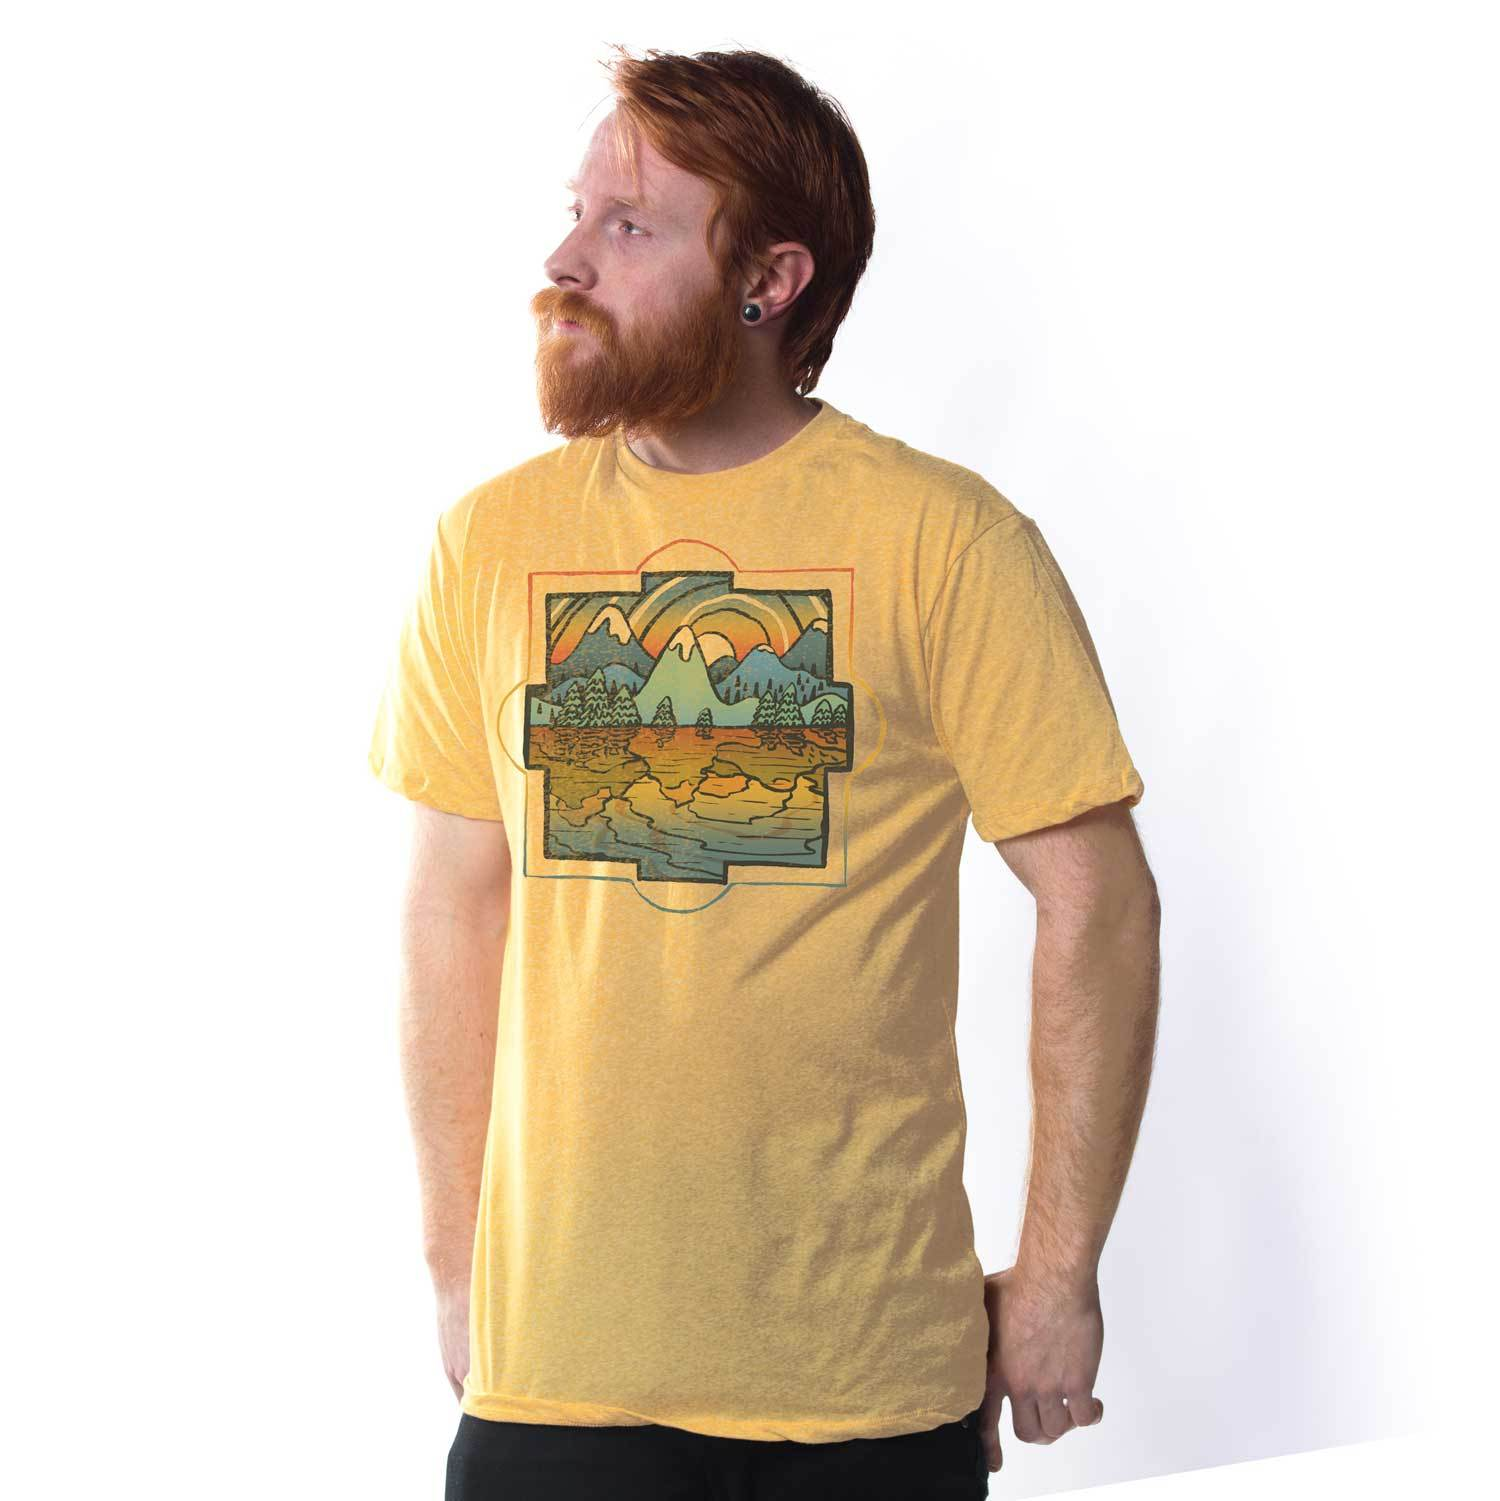 Men's Reflections Vintage Inspired T-Shirt | Cool Colorful Lake Graphic Tee | Solid Threads